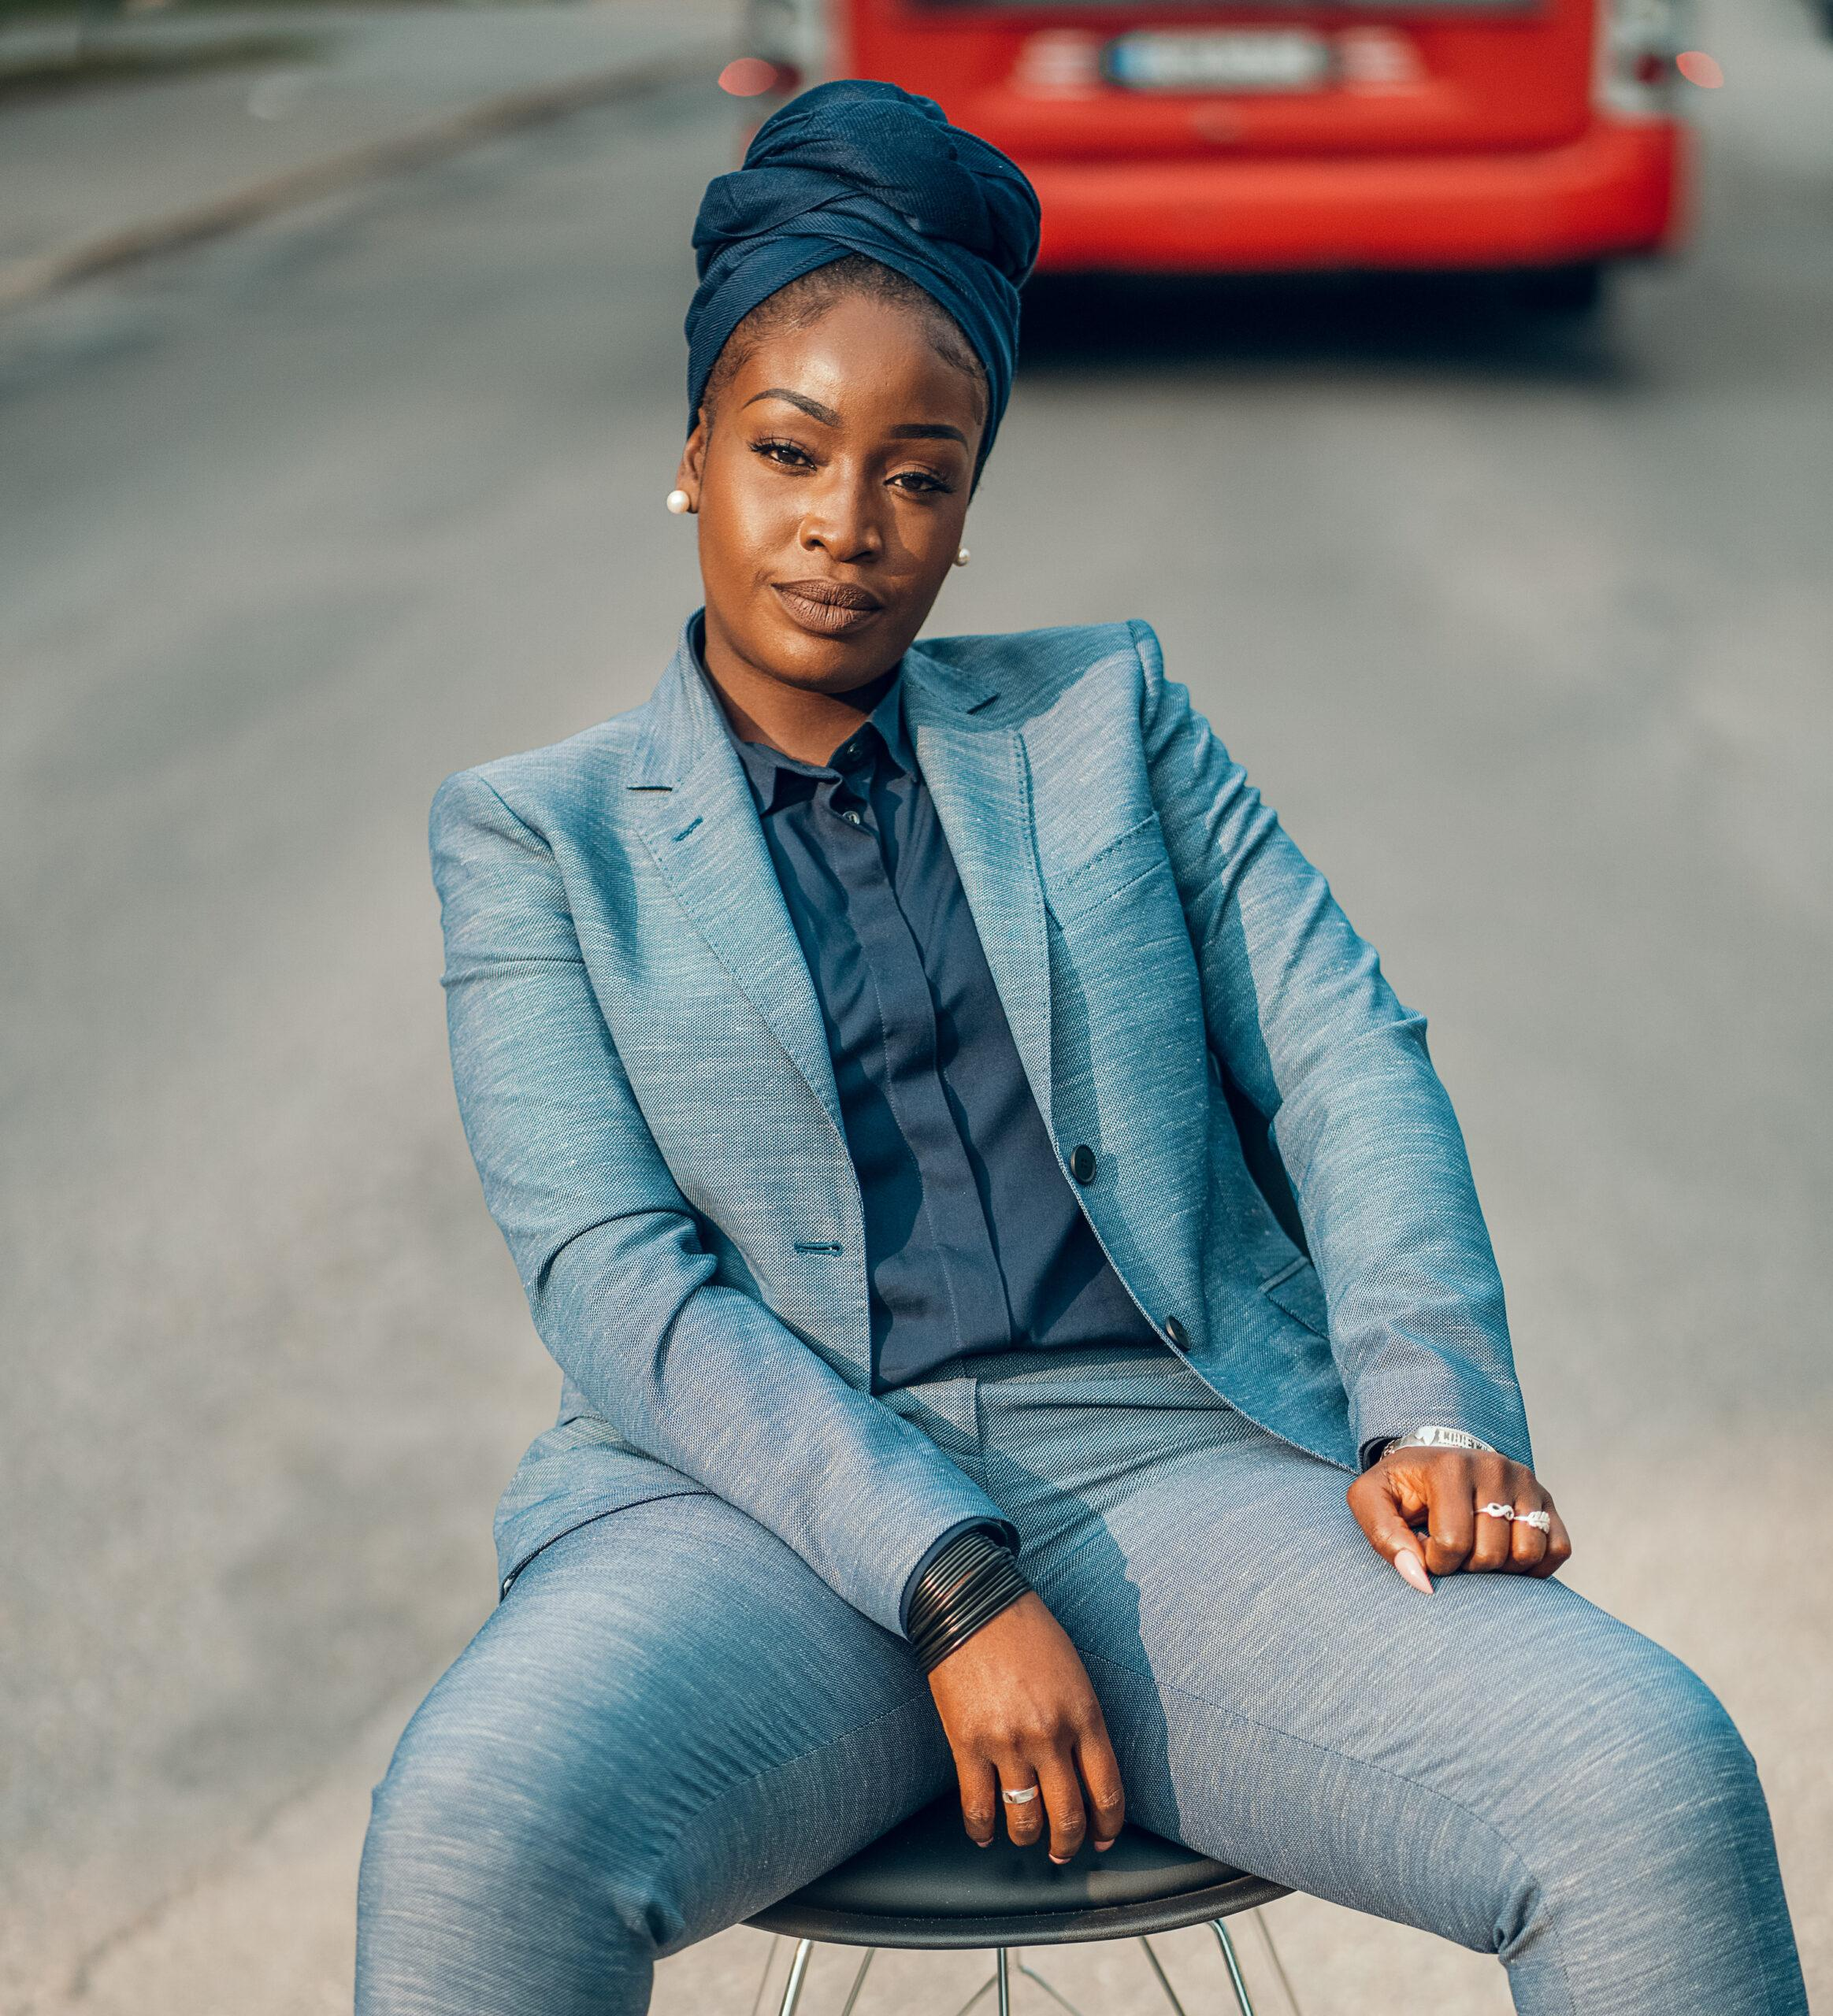 Portrait of Lovette Jallow in a blue suit and a scarf on her head sitting down looking straight into the camera.